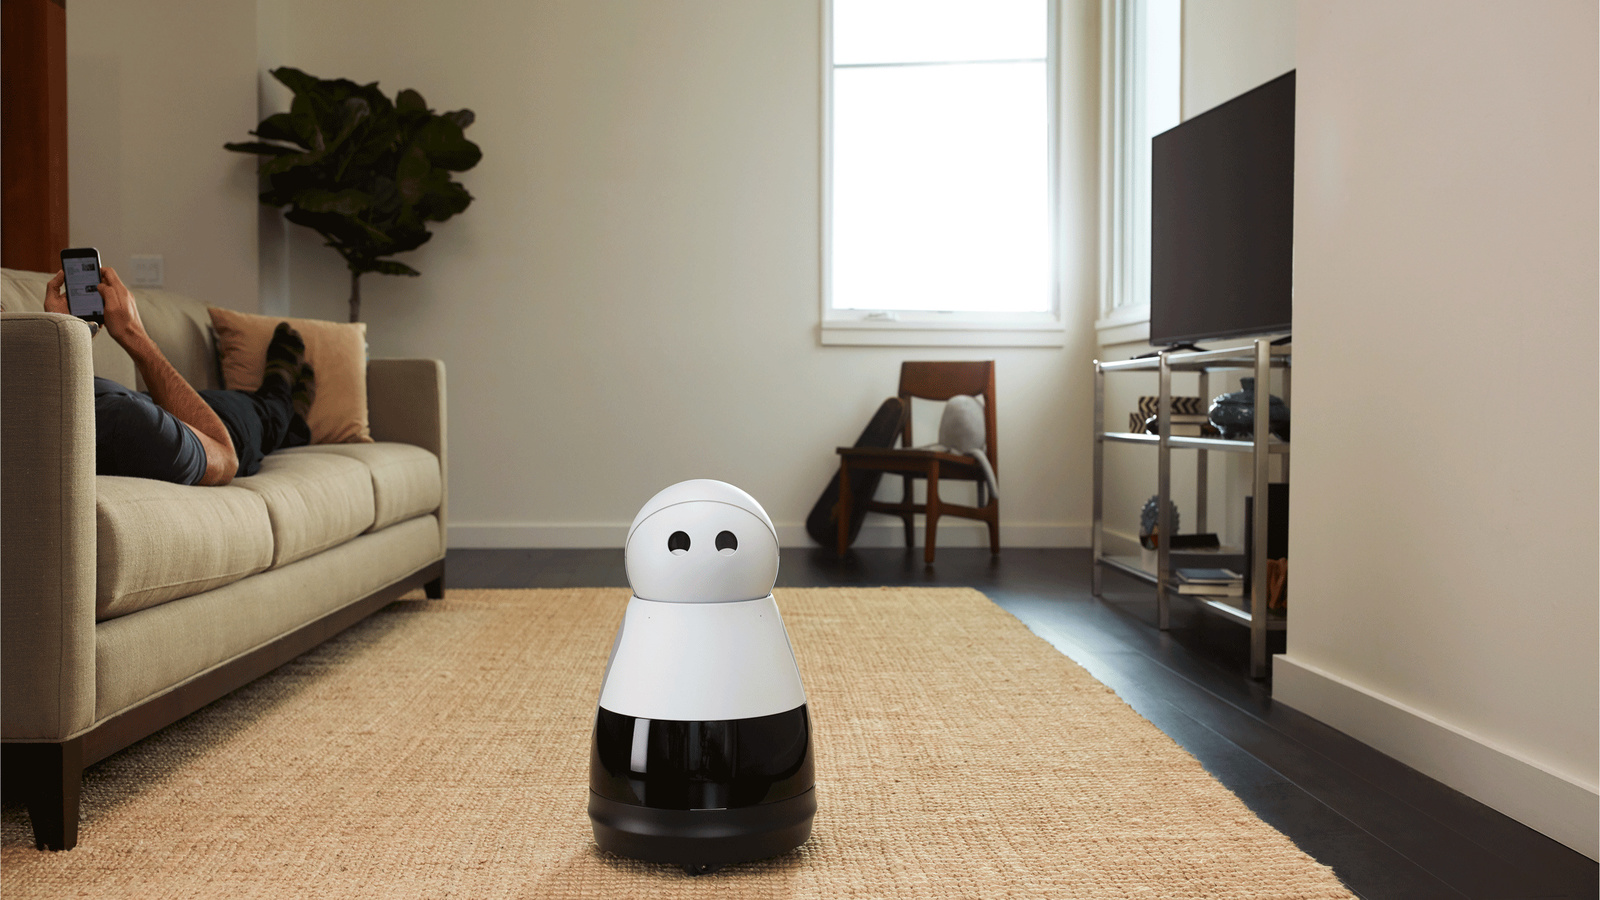 Home robot Kuri supports people in their everyday life.